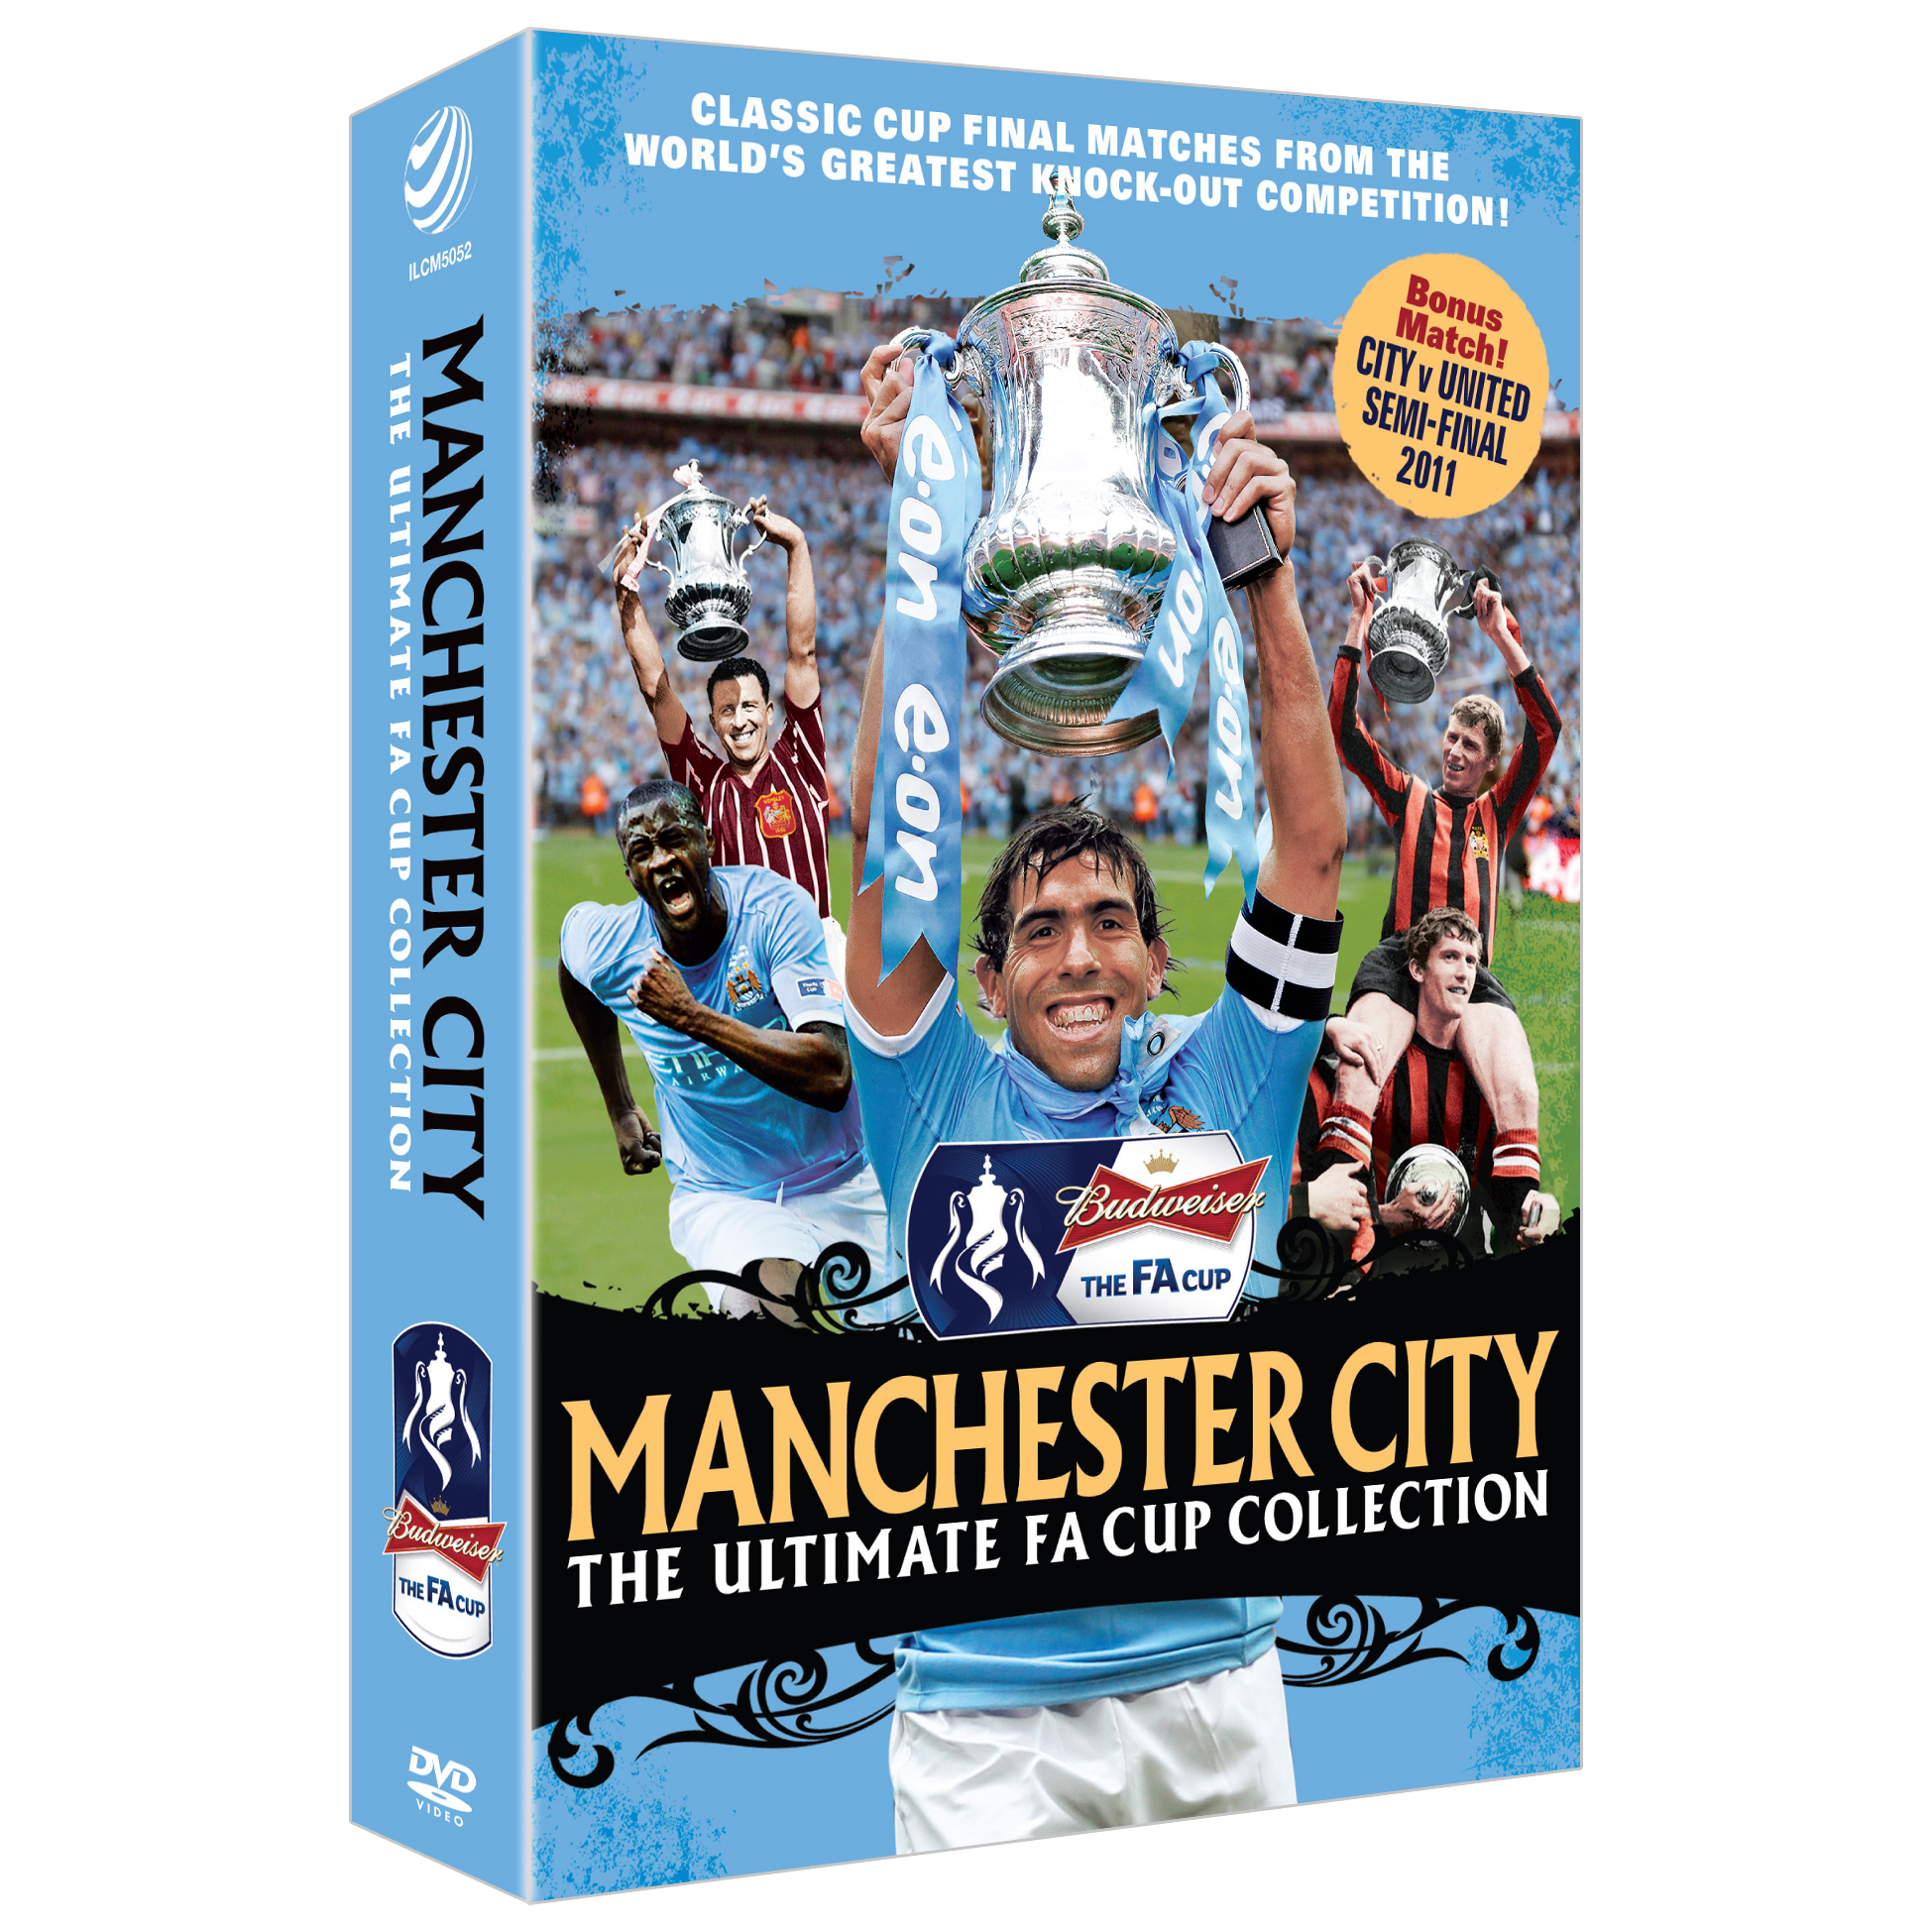 Manchester City The Ultimate FA Cup Collection- 3 Disc Box Set DVD